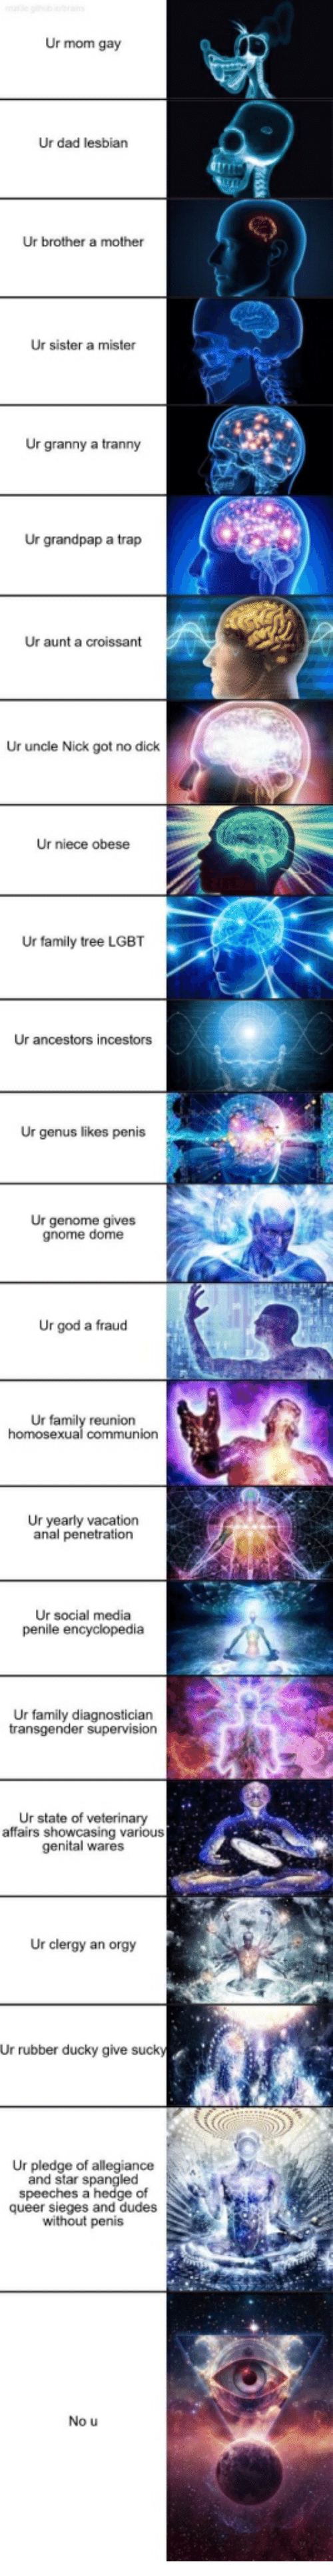 Dad, Family, and God: Ur mom gay  Ur dad lesbian  Ur brother a mother  Ur sister a mister  Ur granny a tranny  Ur grandpap a trap  Ur aunt a croissant  Ur uncle Nick got no dick  Ur niece obese  Ur family tree LGBT  Ur ancestors incestors  Ur genus likes penis  Ur genome gives  gnome dome  Ur god a fraud  Ur family reunion  Ur yearly vacation  anal penetration  Ur social media  penile encyclopedia  Ur family diagnostician  Ur state of veterinary  affairs showcasing various  genital wares  Ur clergy an orgy  ud  Ur rubber ducky give suck  Ur pledge of allegiance  and star spangled  speeches a hedge of  queer sieges and dudes  without penis  No u